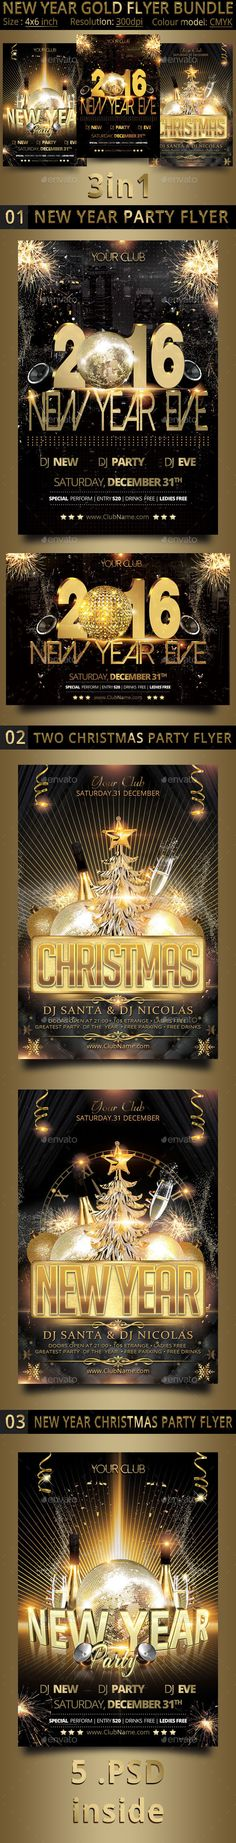 club flyers event flyers new years party party flyer gold christmas nightclub flyer template nye paper envelopes